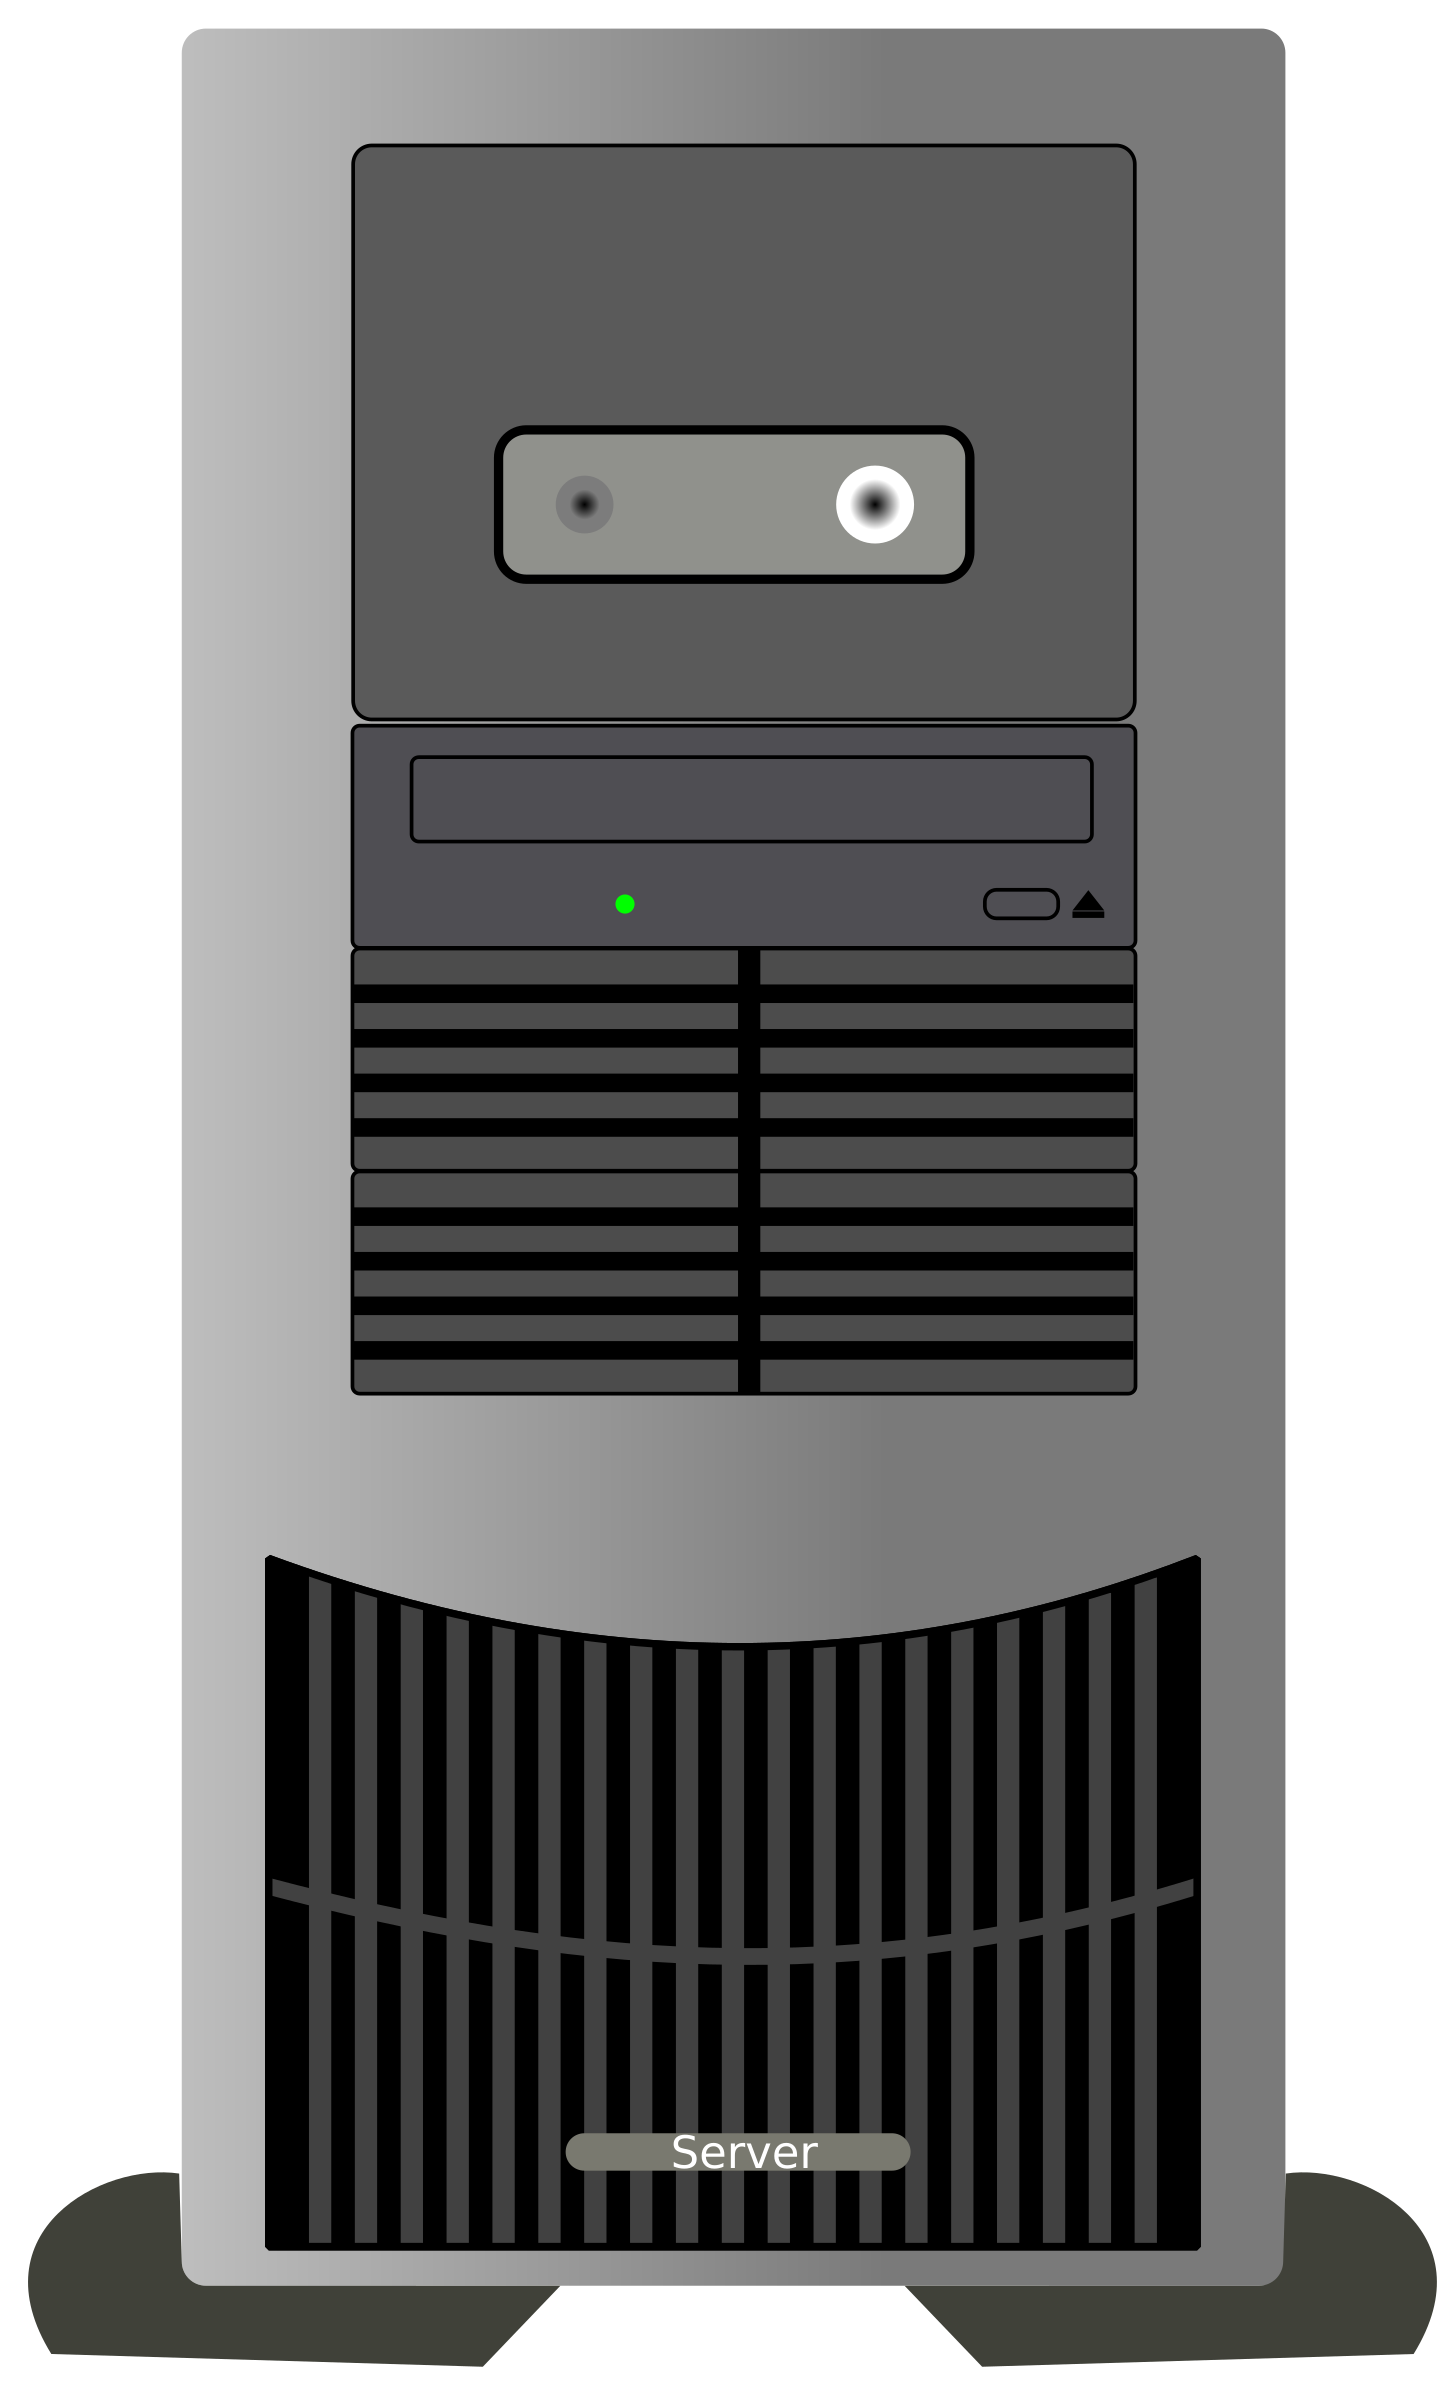 Server png image with. Tower clipart technological